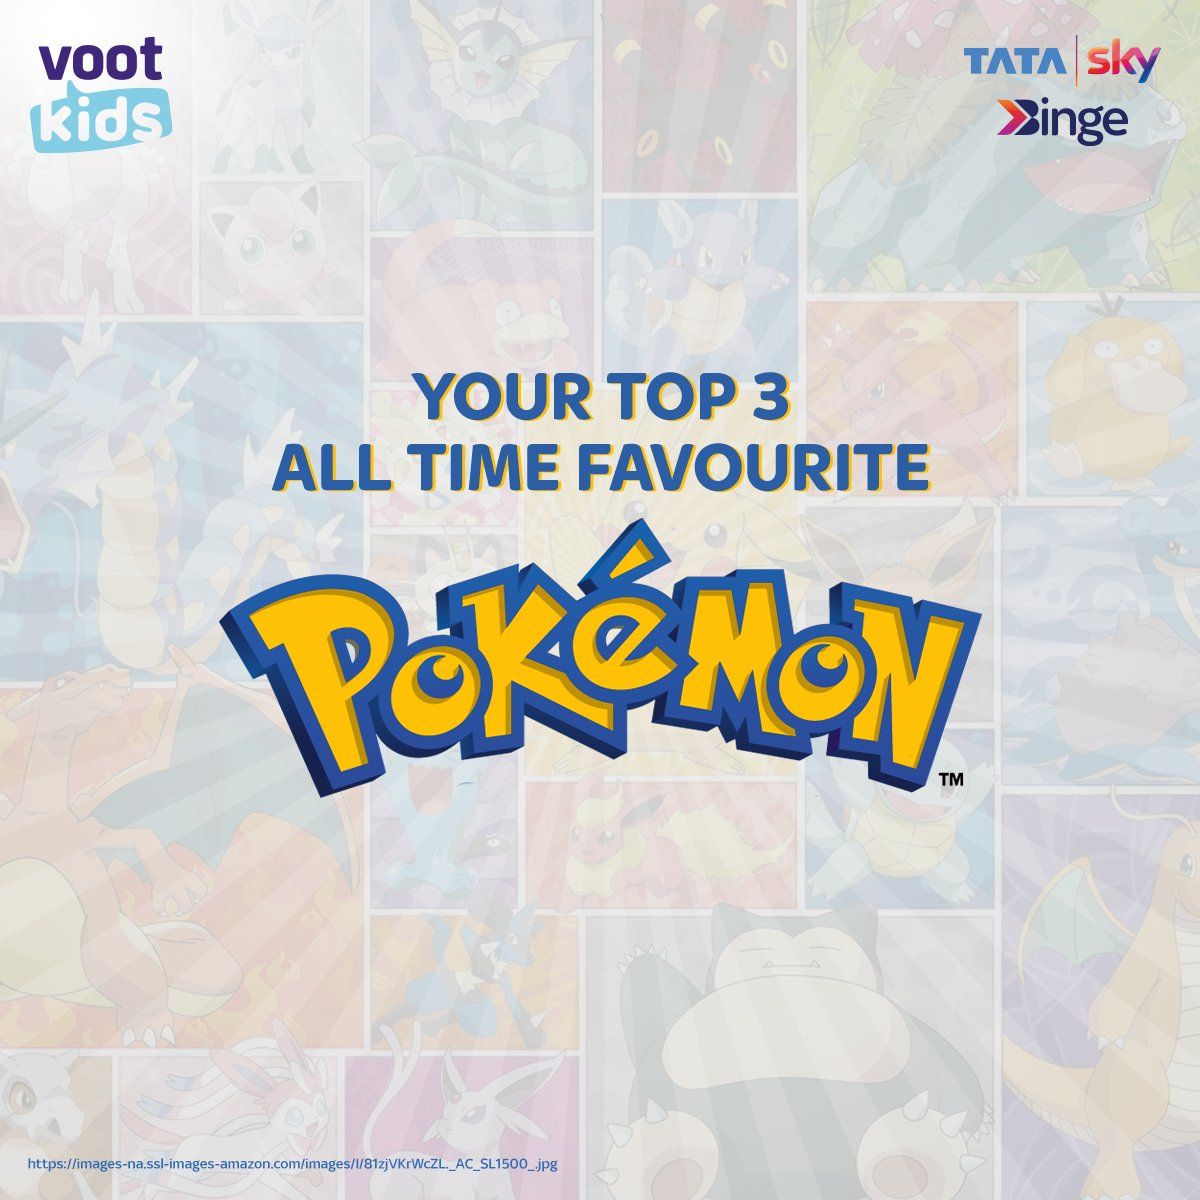 Charizard, Pikachu & Snorlax is taken😉 Tell us your favourite Pokemons in the comment section below.  Click here to get BINGE-ING-   #EntertainmentKoBadaKaro #Pokemon #BingeKaro #TataSkyBingeKaro #Binge #Bingewatch #Movies #Entertainment #LateNightBinge